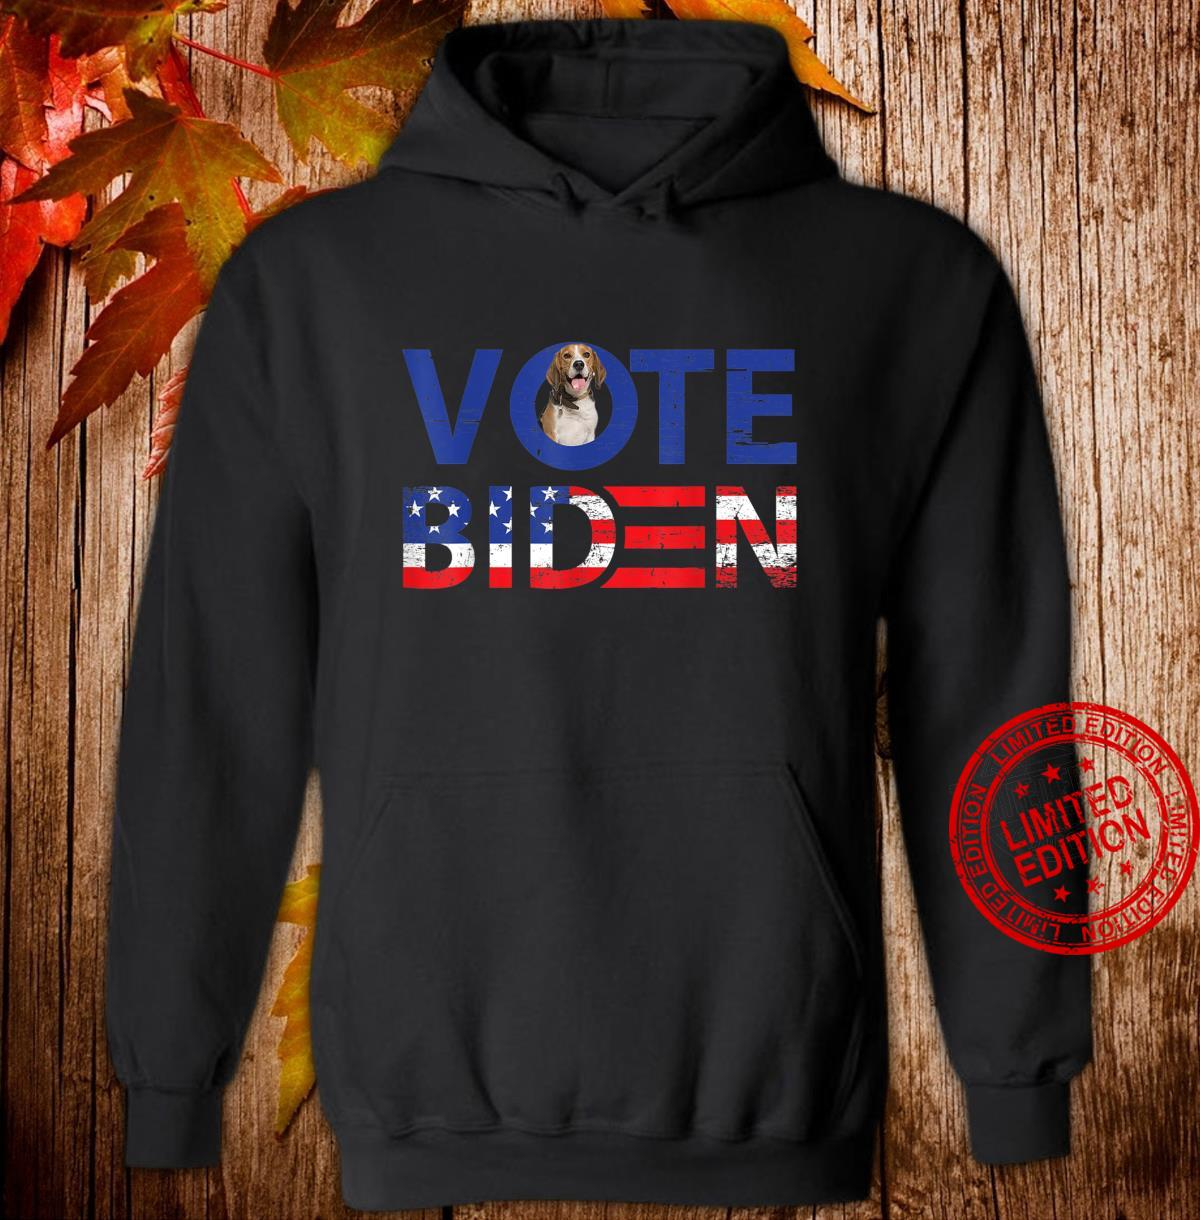 My Beagle Want Vote For Joe Biden. President Shirt Shirt hoodie